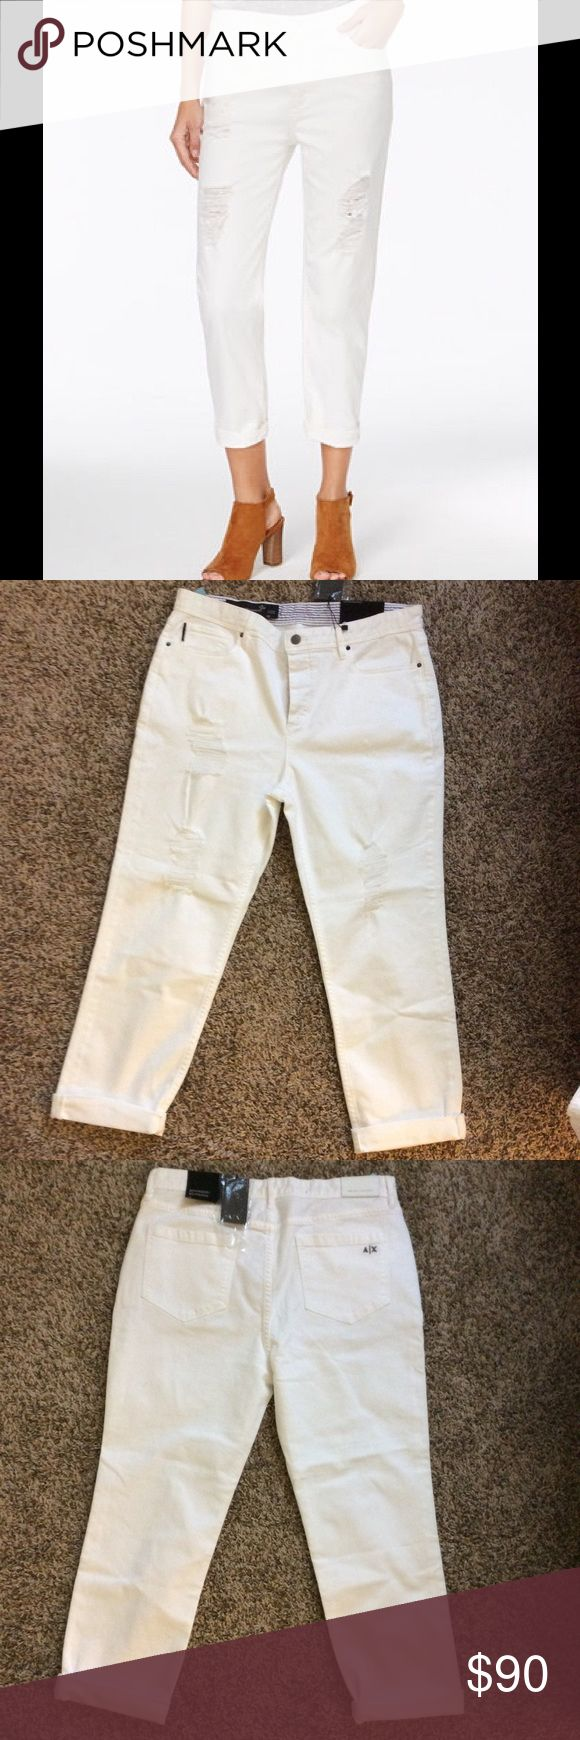 """NWT Armani Exchange Distressed Boyfriend Jeans Comfort meets style in these ripped boyfriend jeans from Armani Exchange. Mid rise, inseam 30"""" up cuffed, cotton/spandex material. A/X Armani Exchange Jeans Boyfriend"""